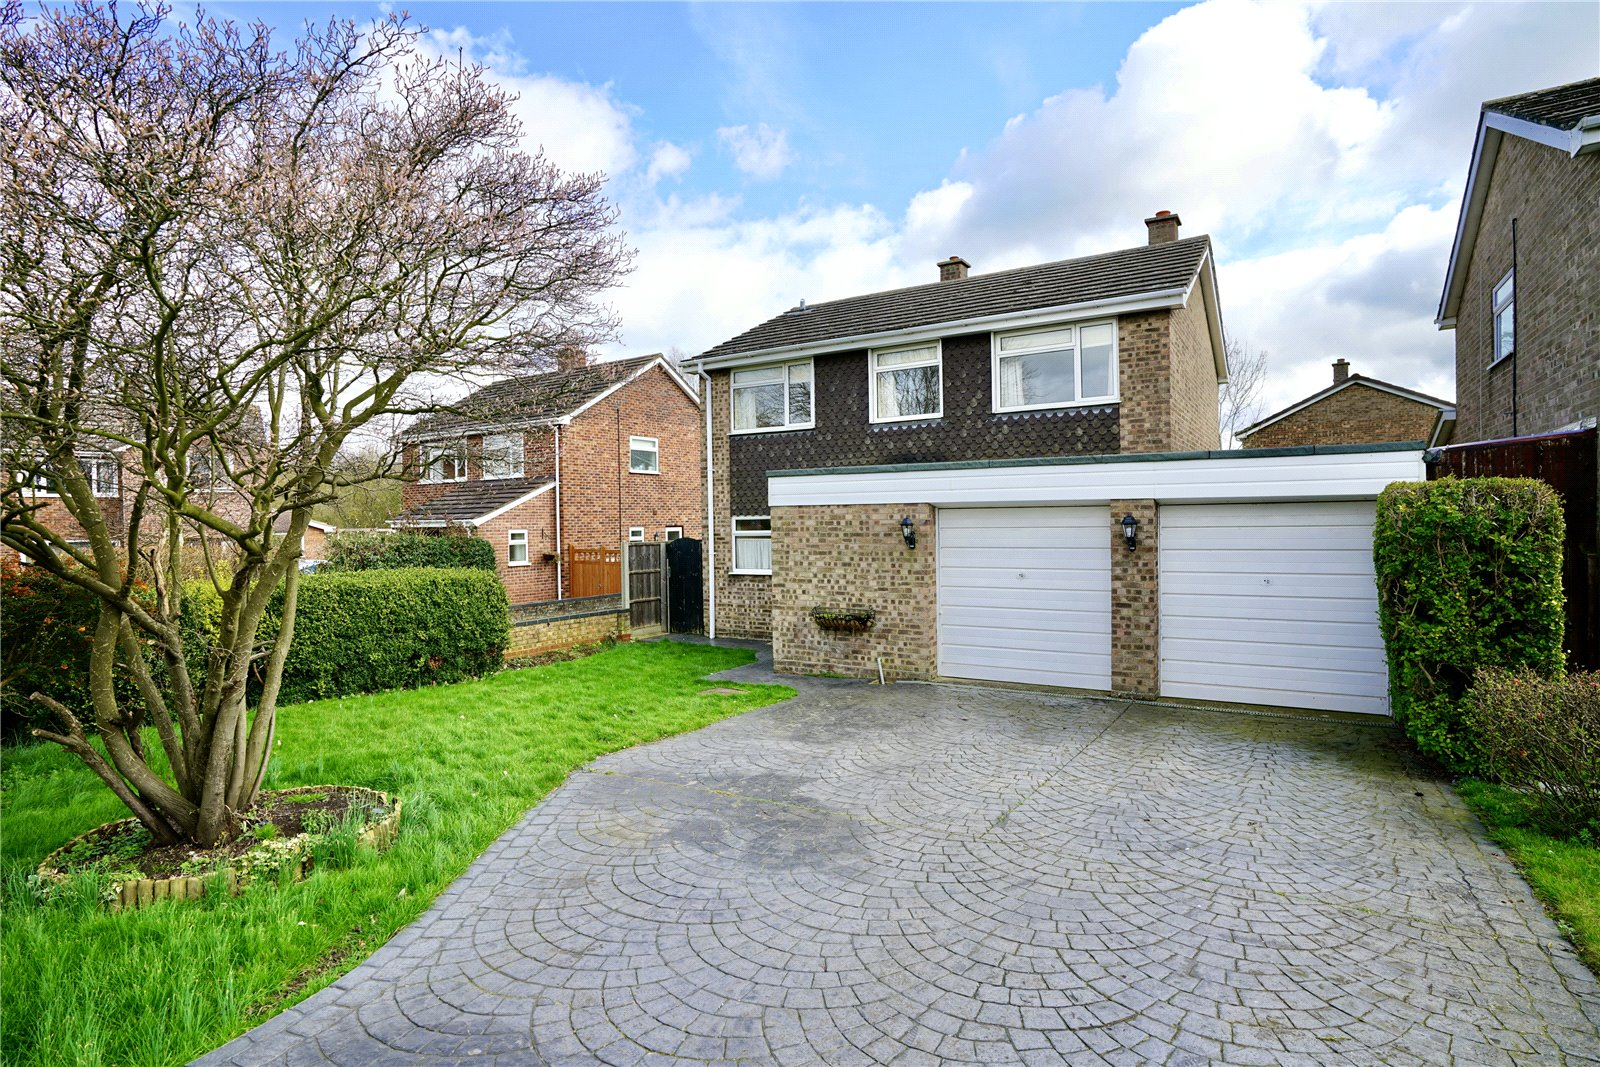 4 bed house for sale in Great Staughton, PE19